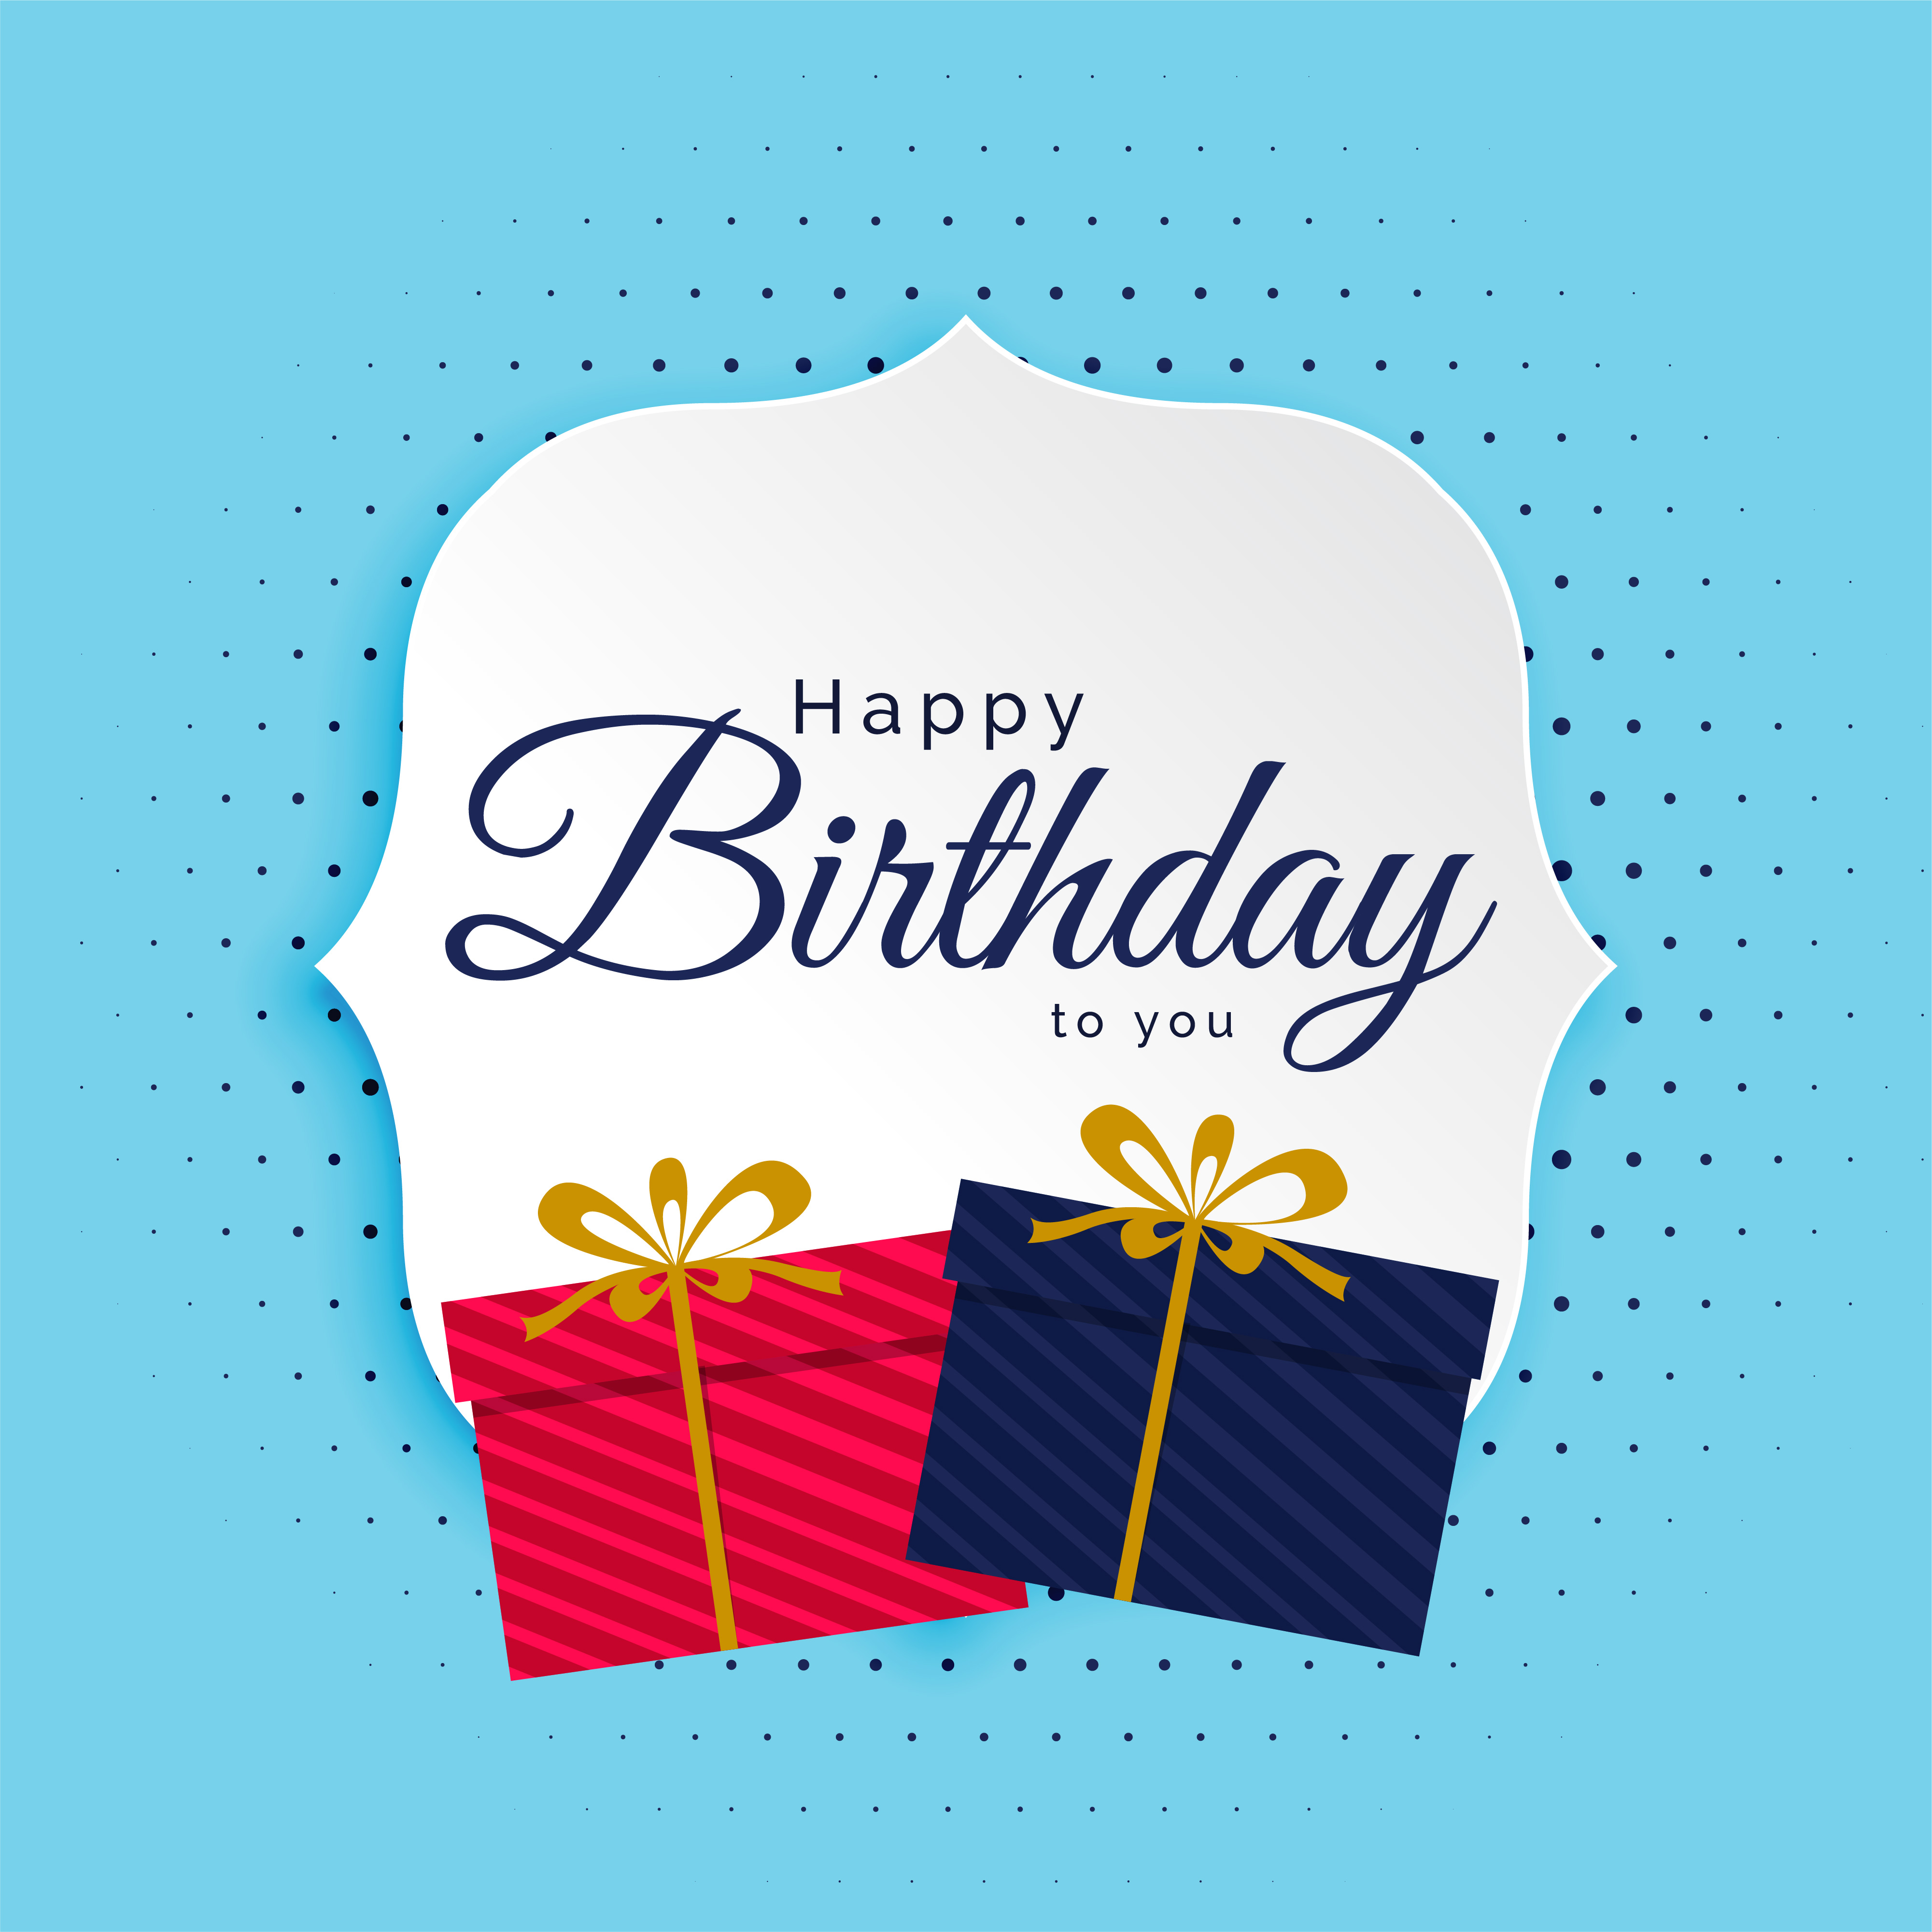 Happy Birthday Background With Gifts Boxes